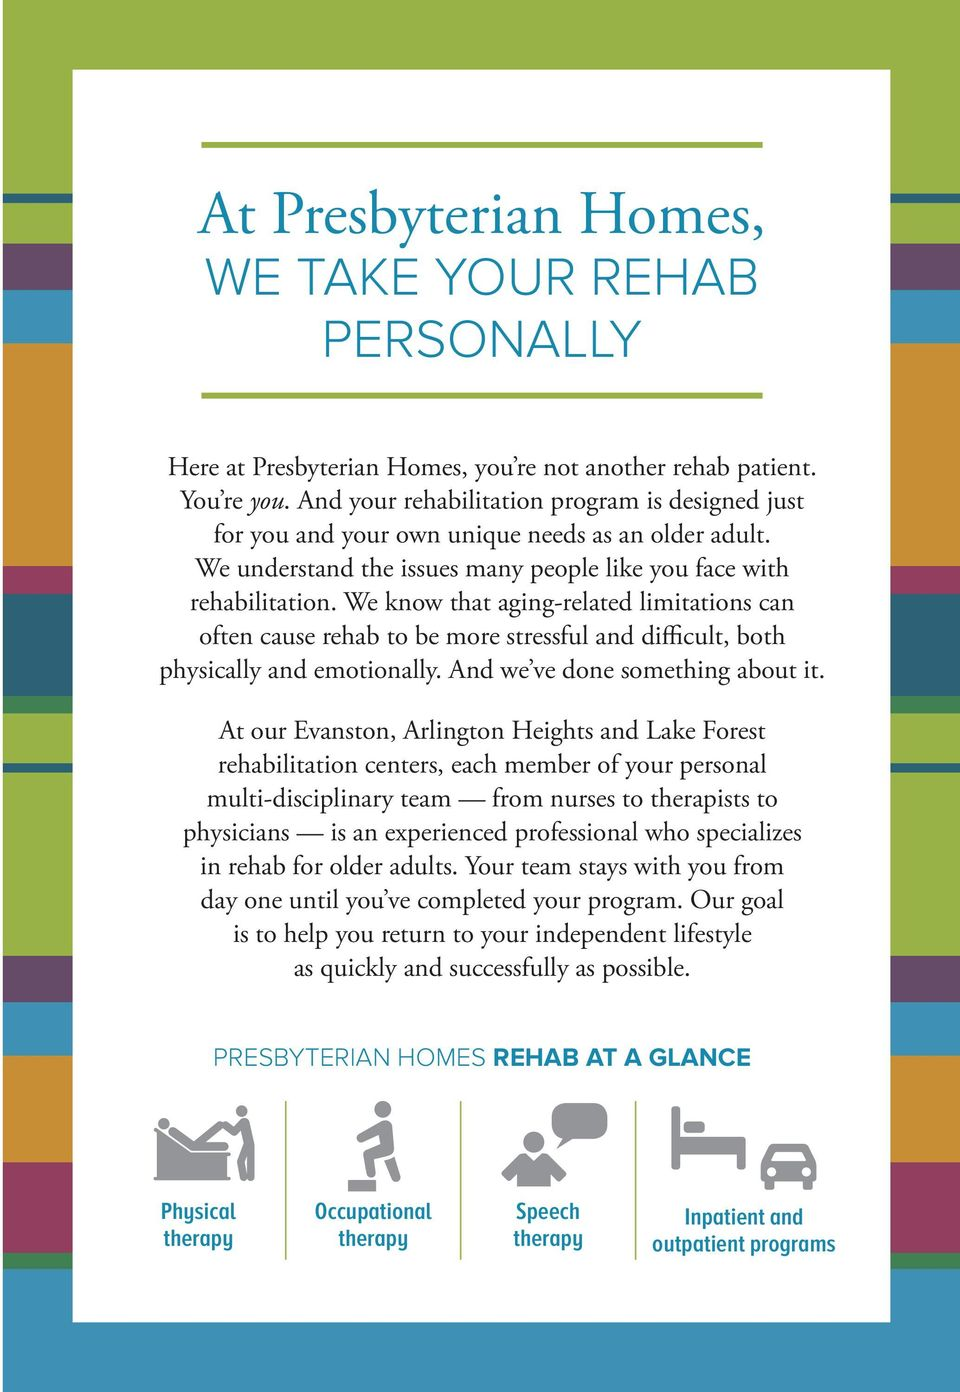 We know that aging-related limitations can often cause rehab to be more stressful and difficult, both physically and emotionally. And we ve done something about it.